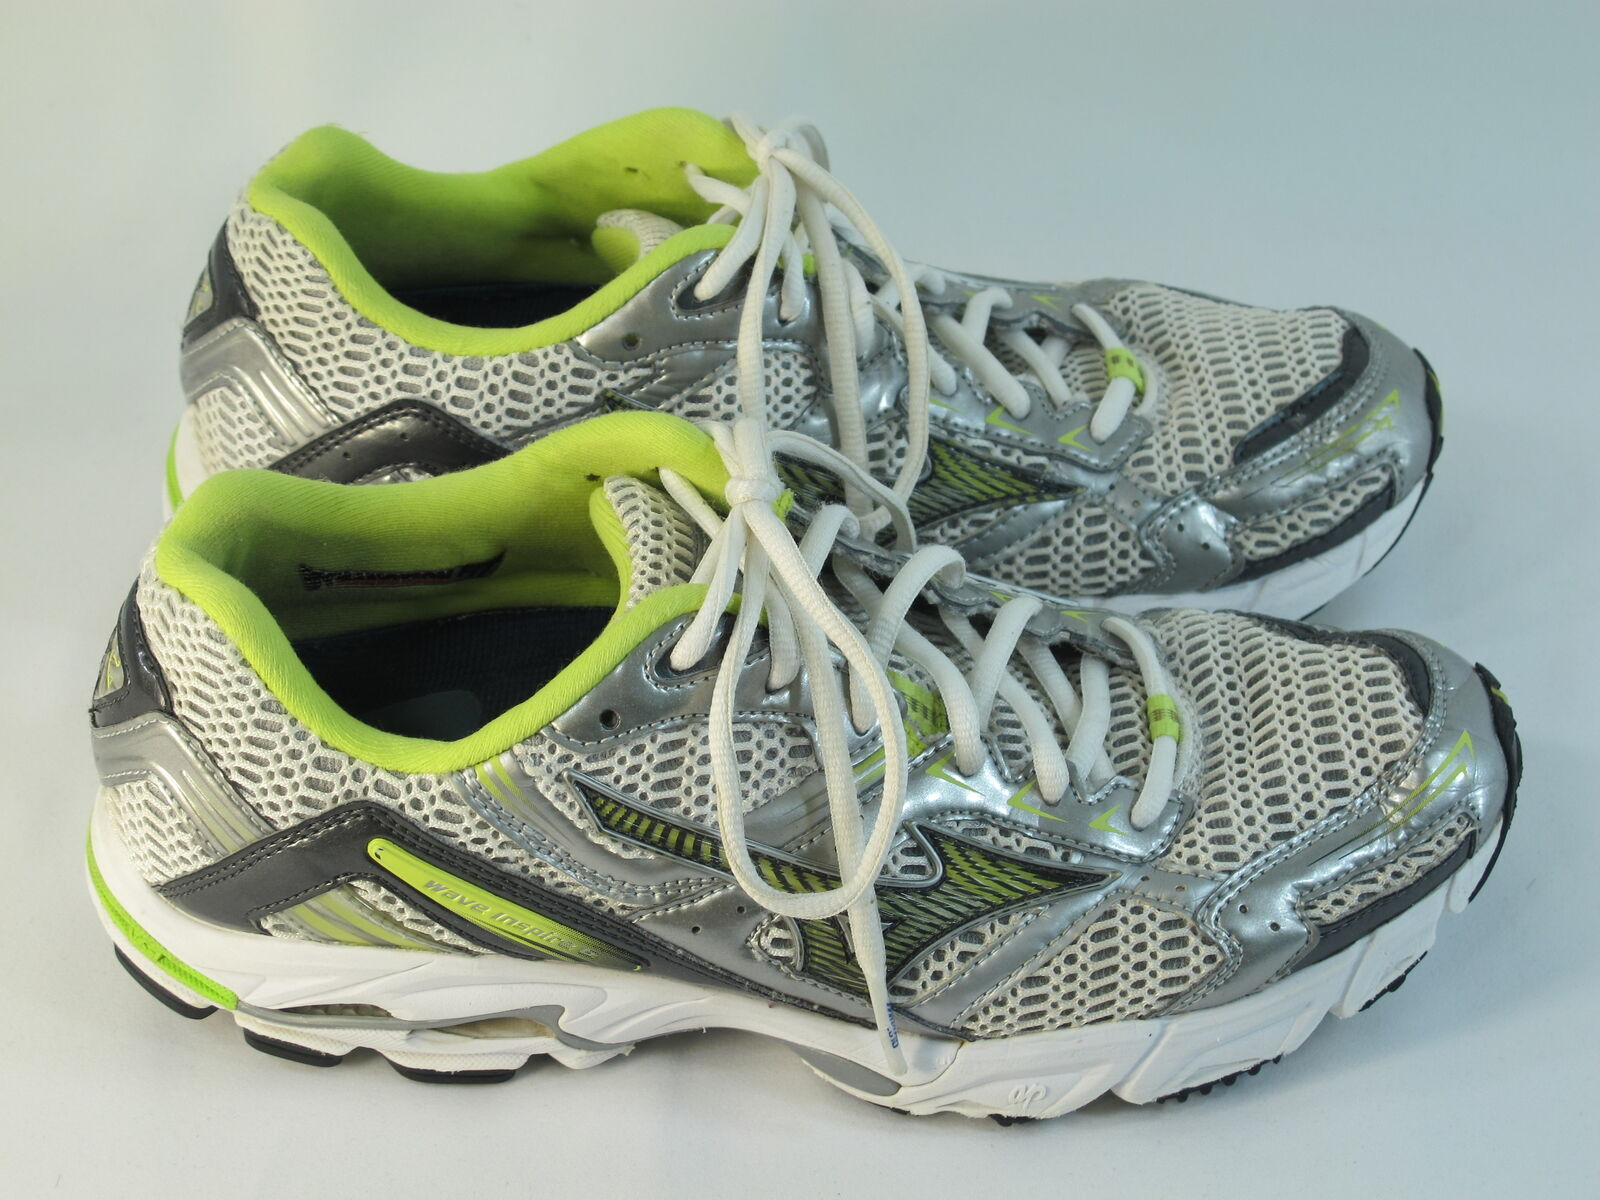 Mizuno Wave Inspire 6 Running shoes Women's Size 9 US Excellent Plus Condition